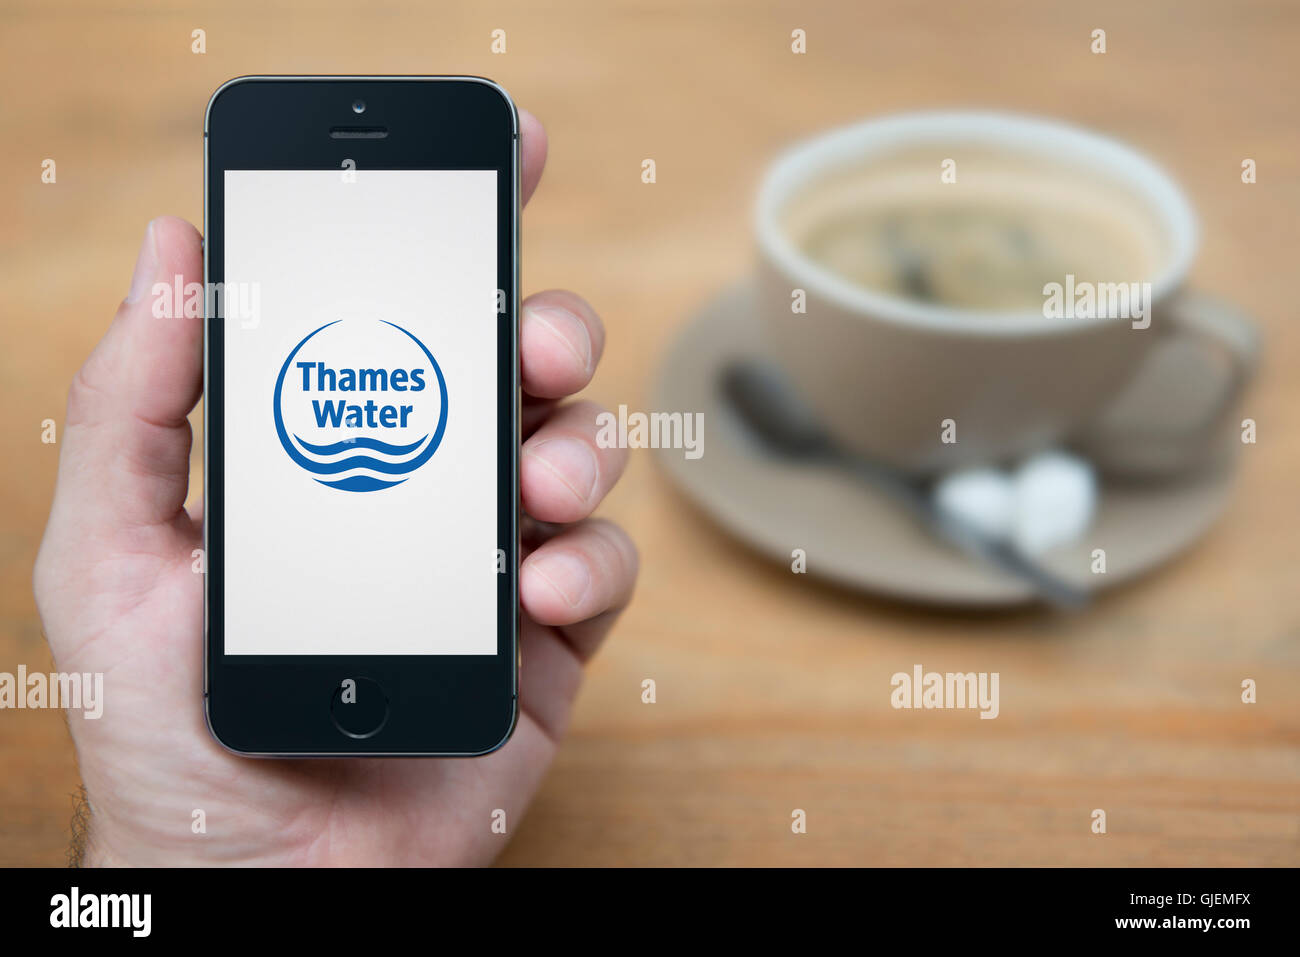 A man looks at his iPhone which displays the Thames Water logo, while sat with a cup of coffee (Editorial use only). - Stock Image